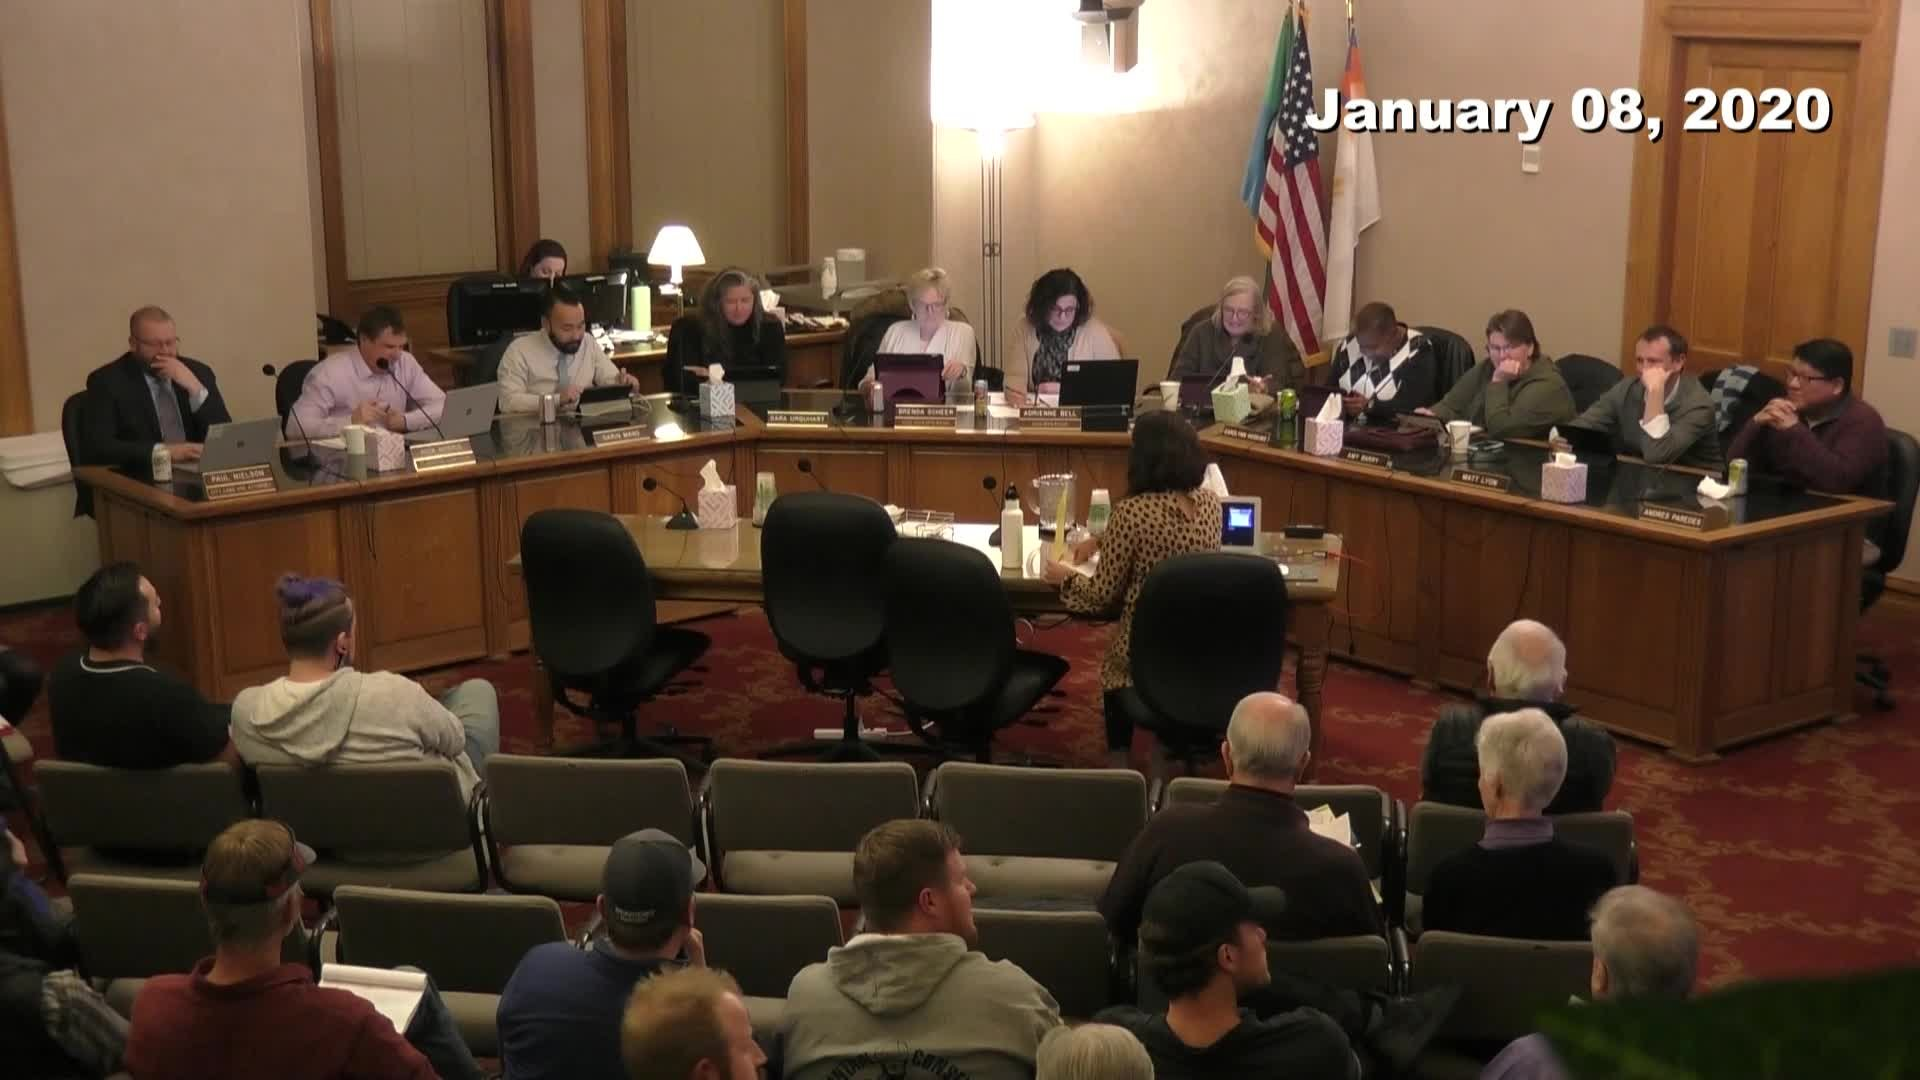 Planning Commission Meeting - 01/08/2020